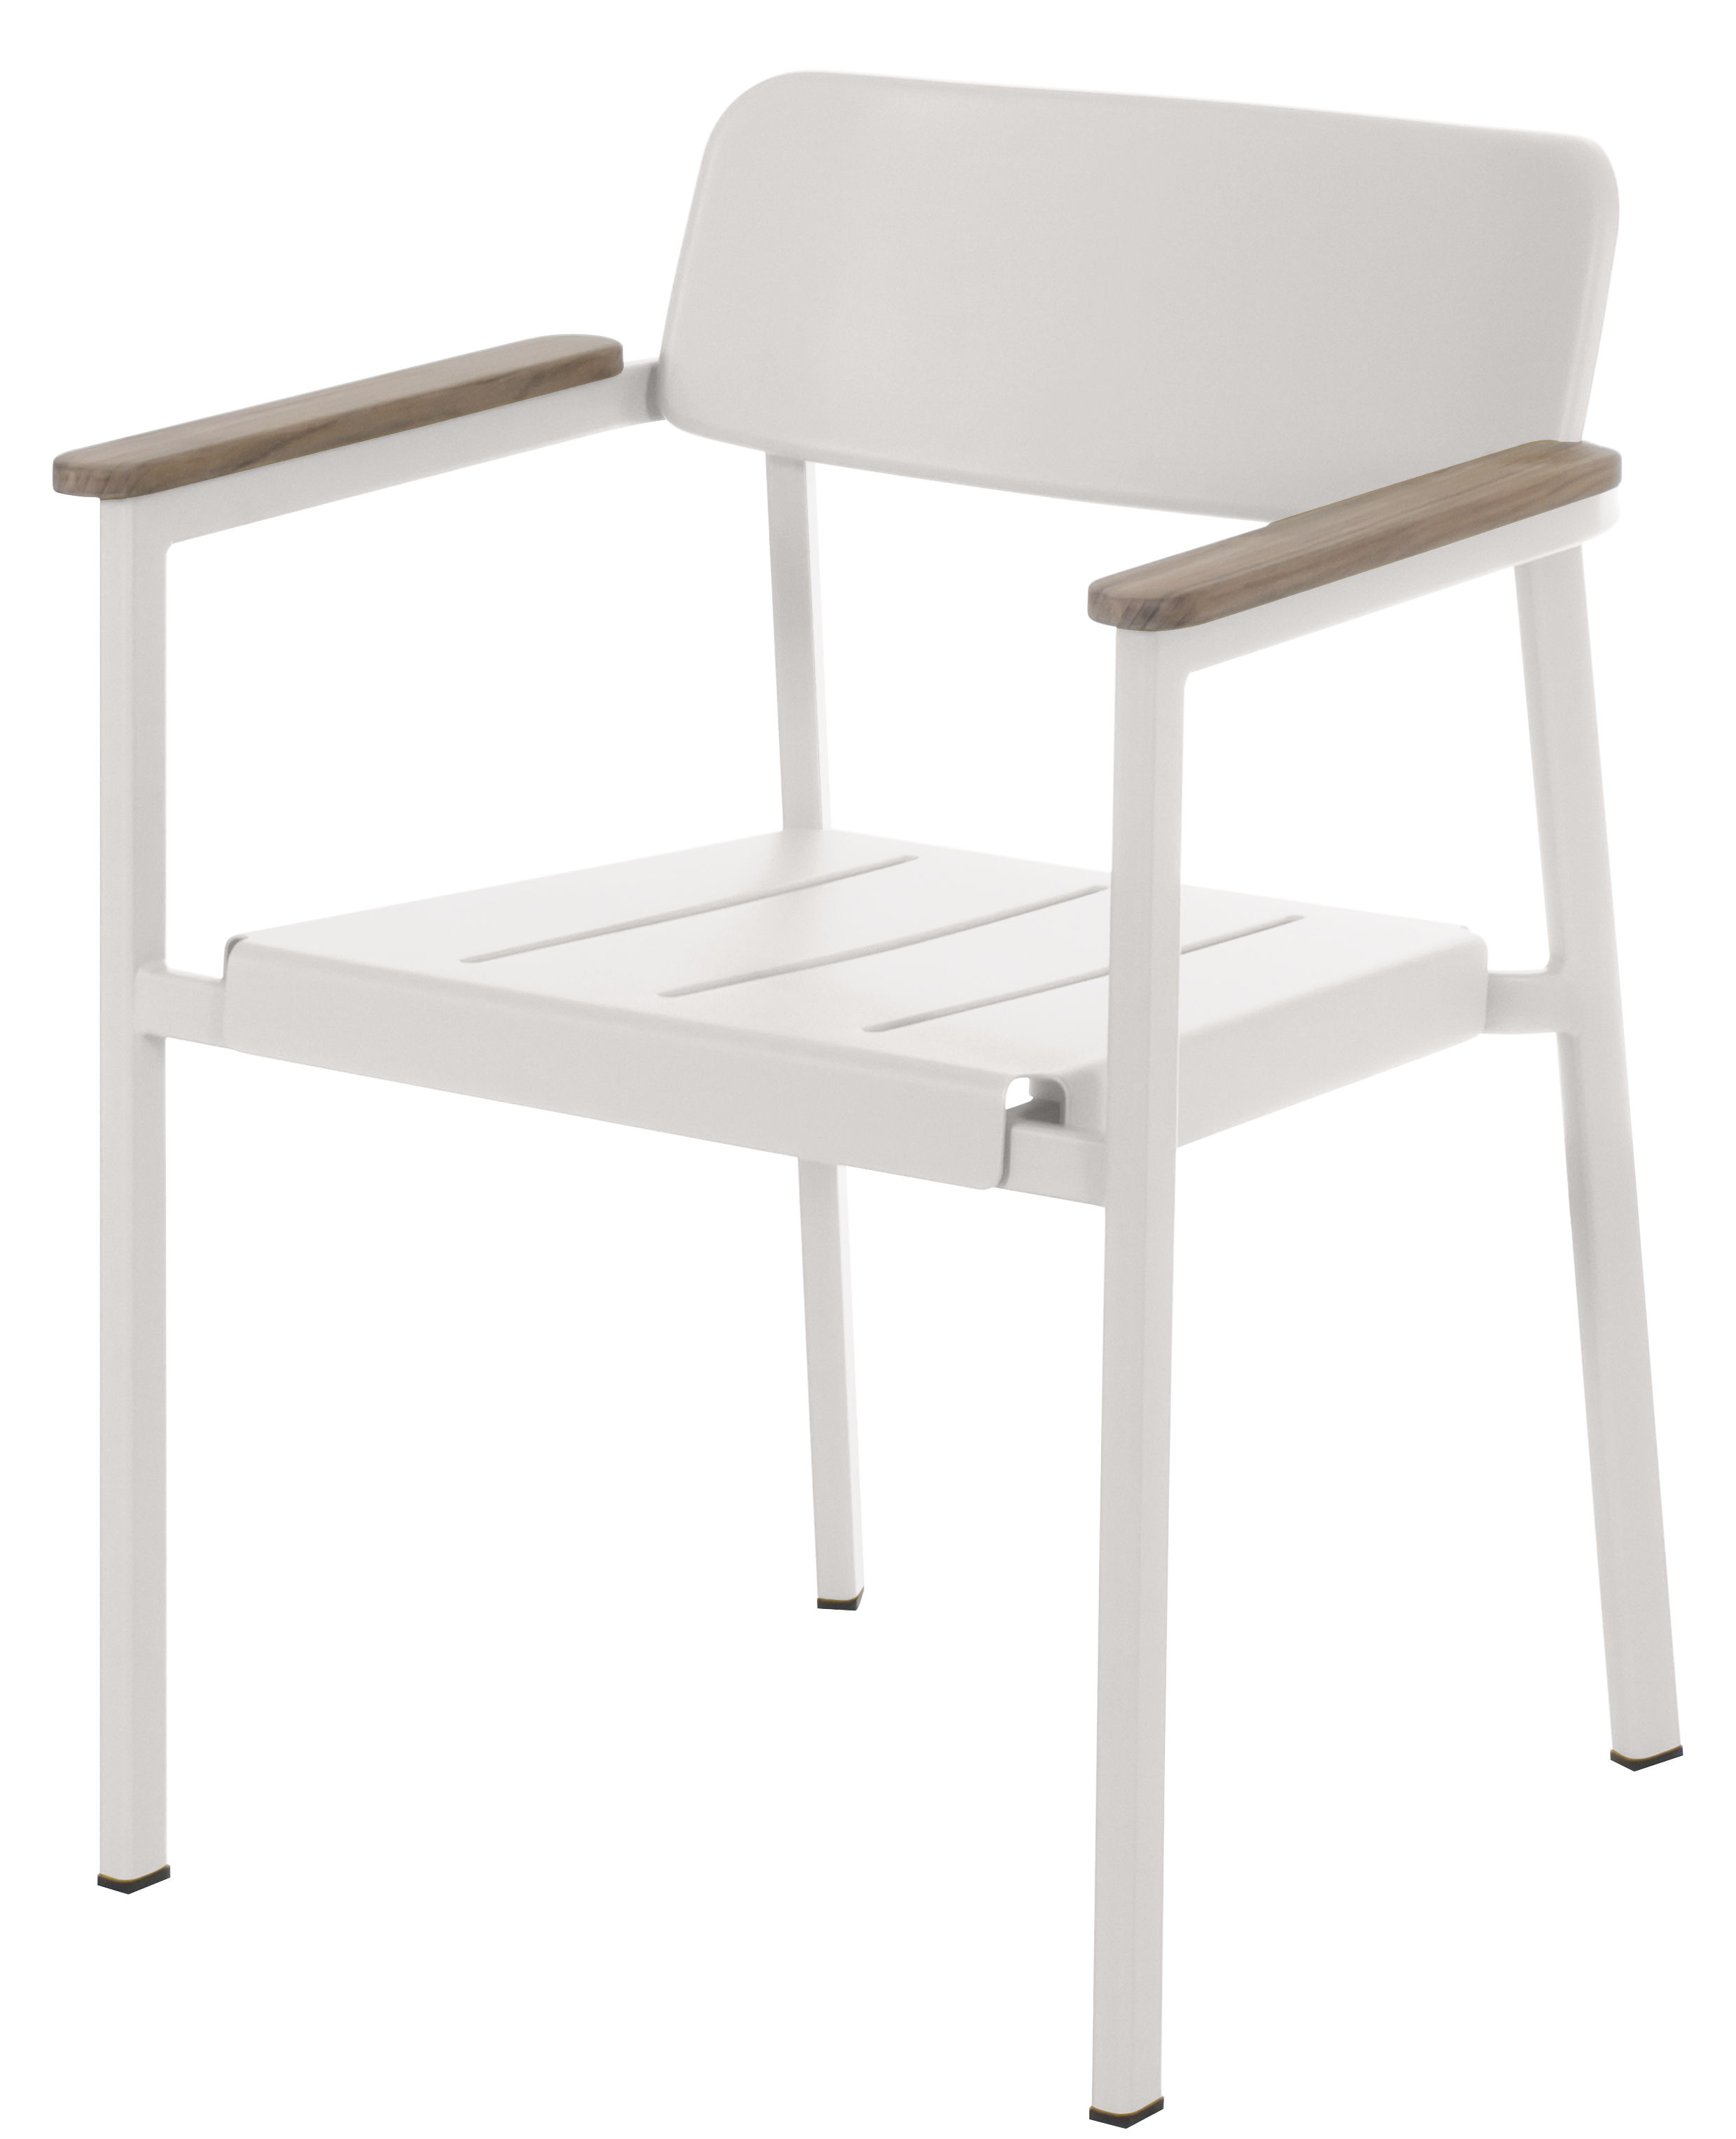 Furniture - Chairs - Shine Stackable armchair - Metal & wood armrests by Emu - White - Teak, Varnished aluminium